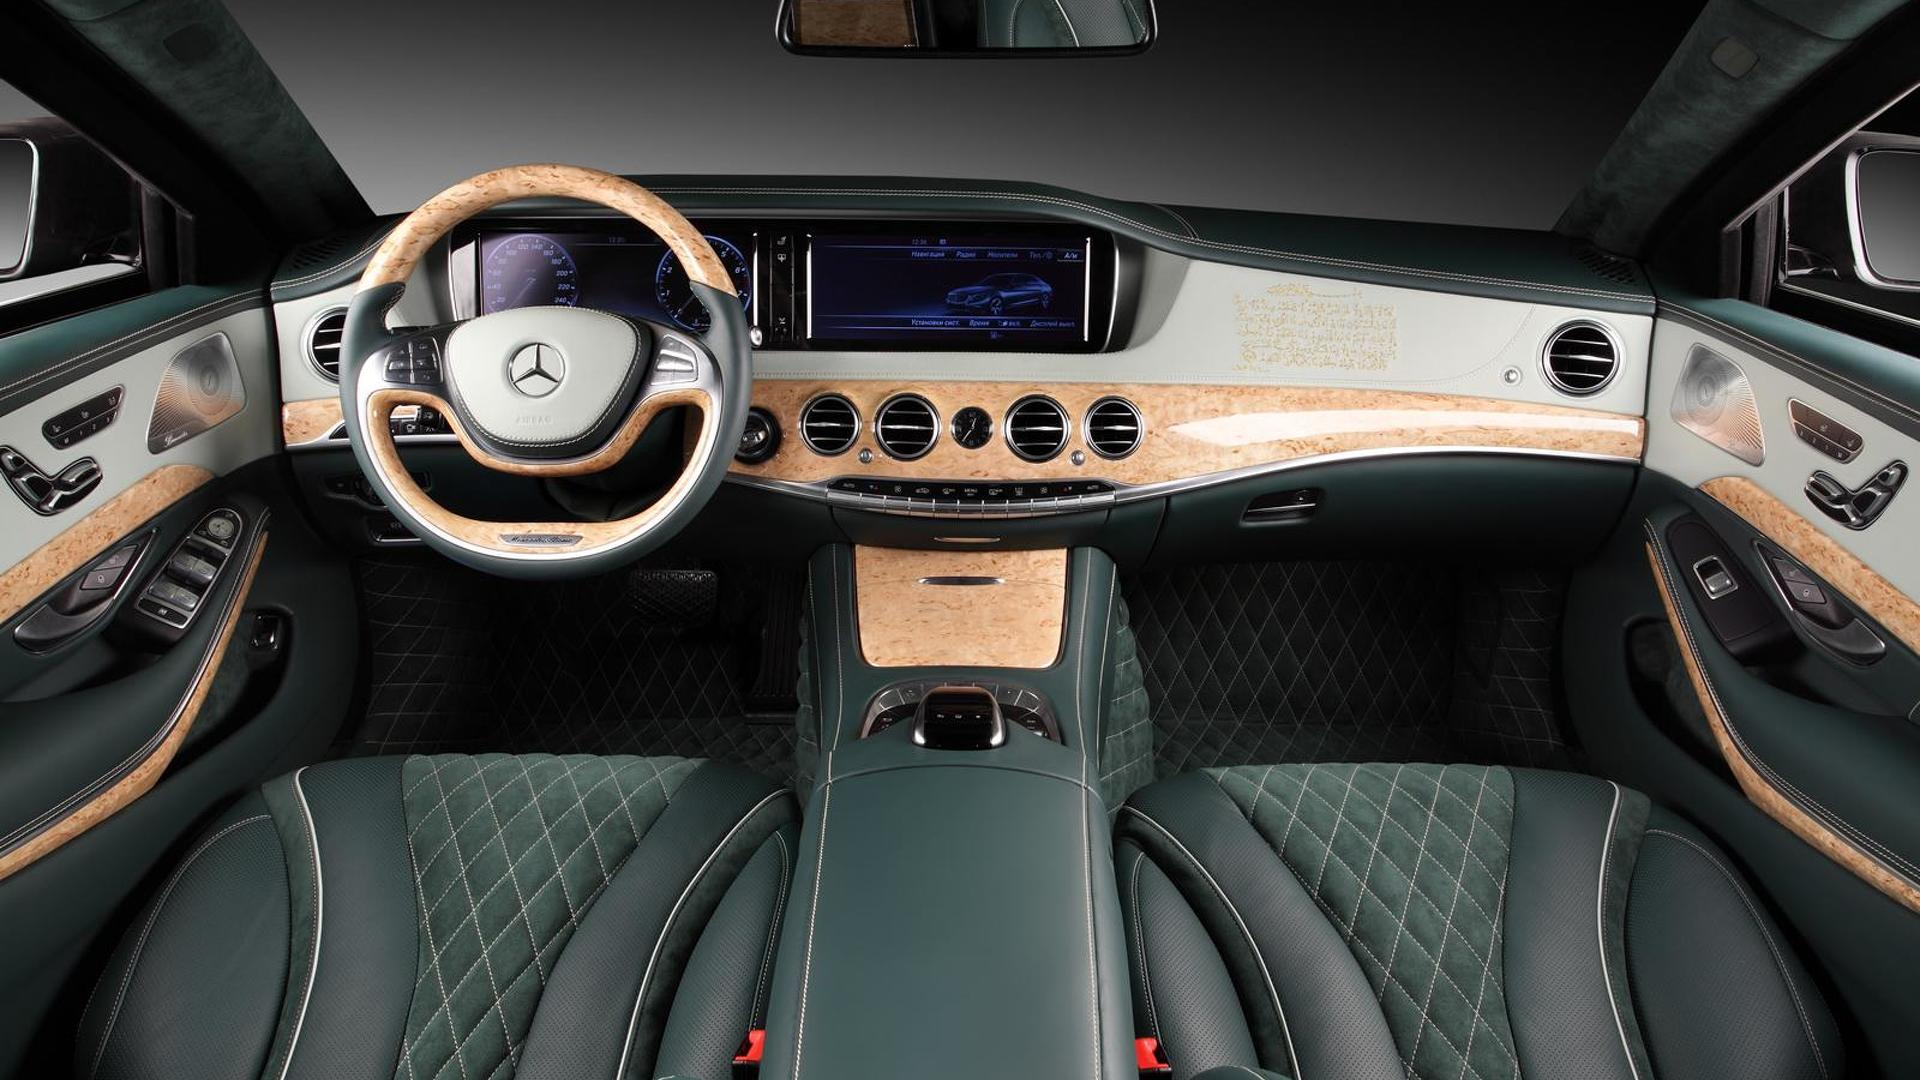 2014 Mercedes-Benz S600 Guard interior cabin tweaked by TopCar